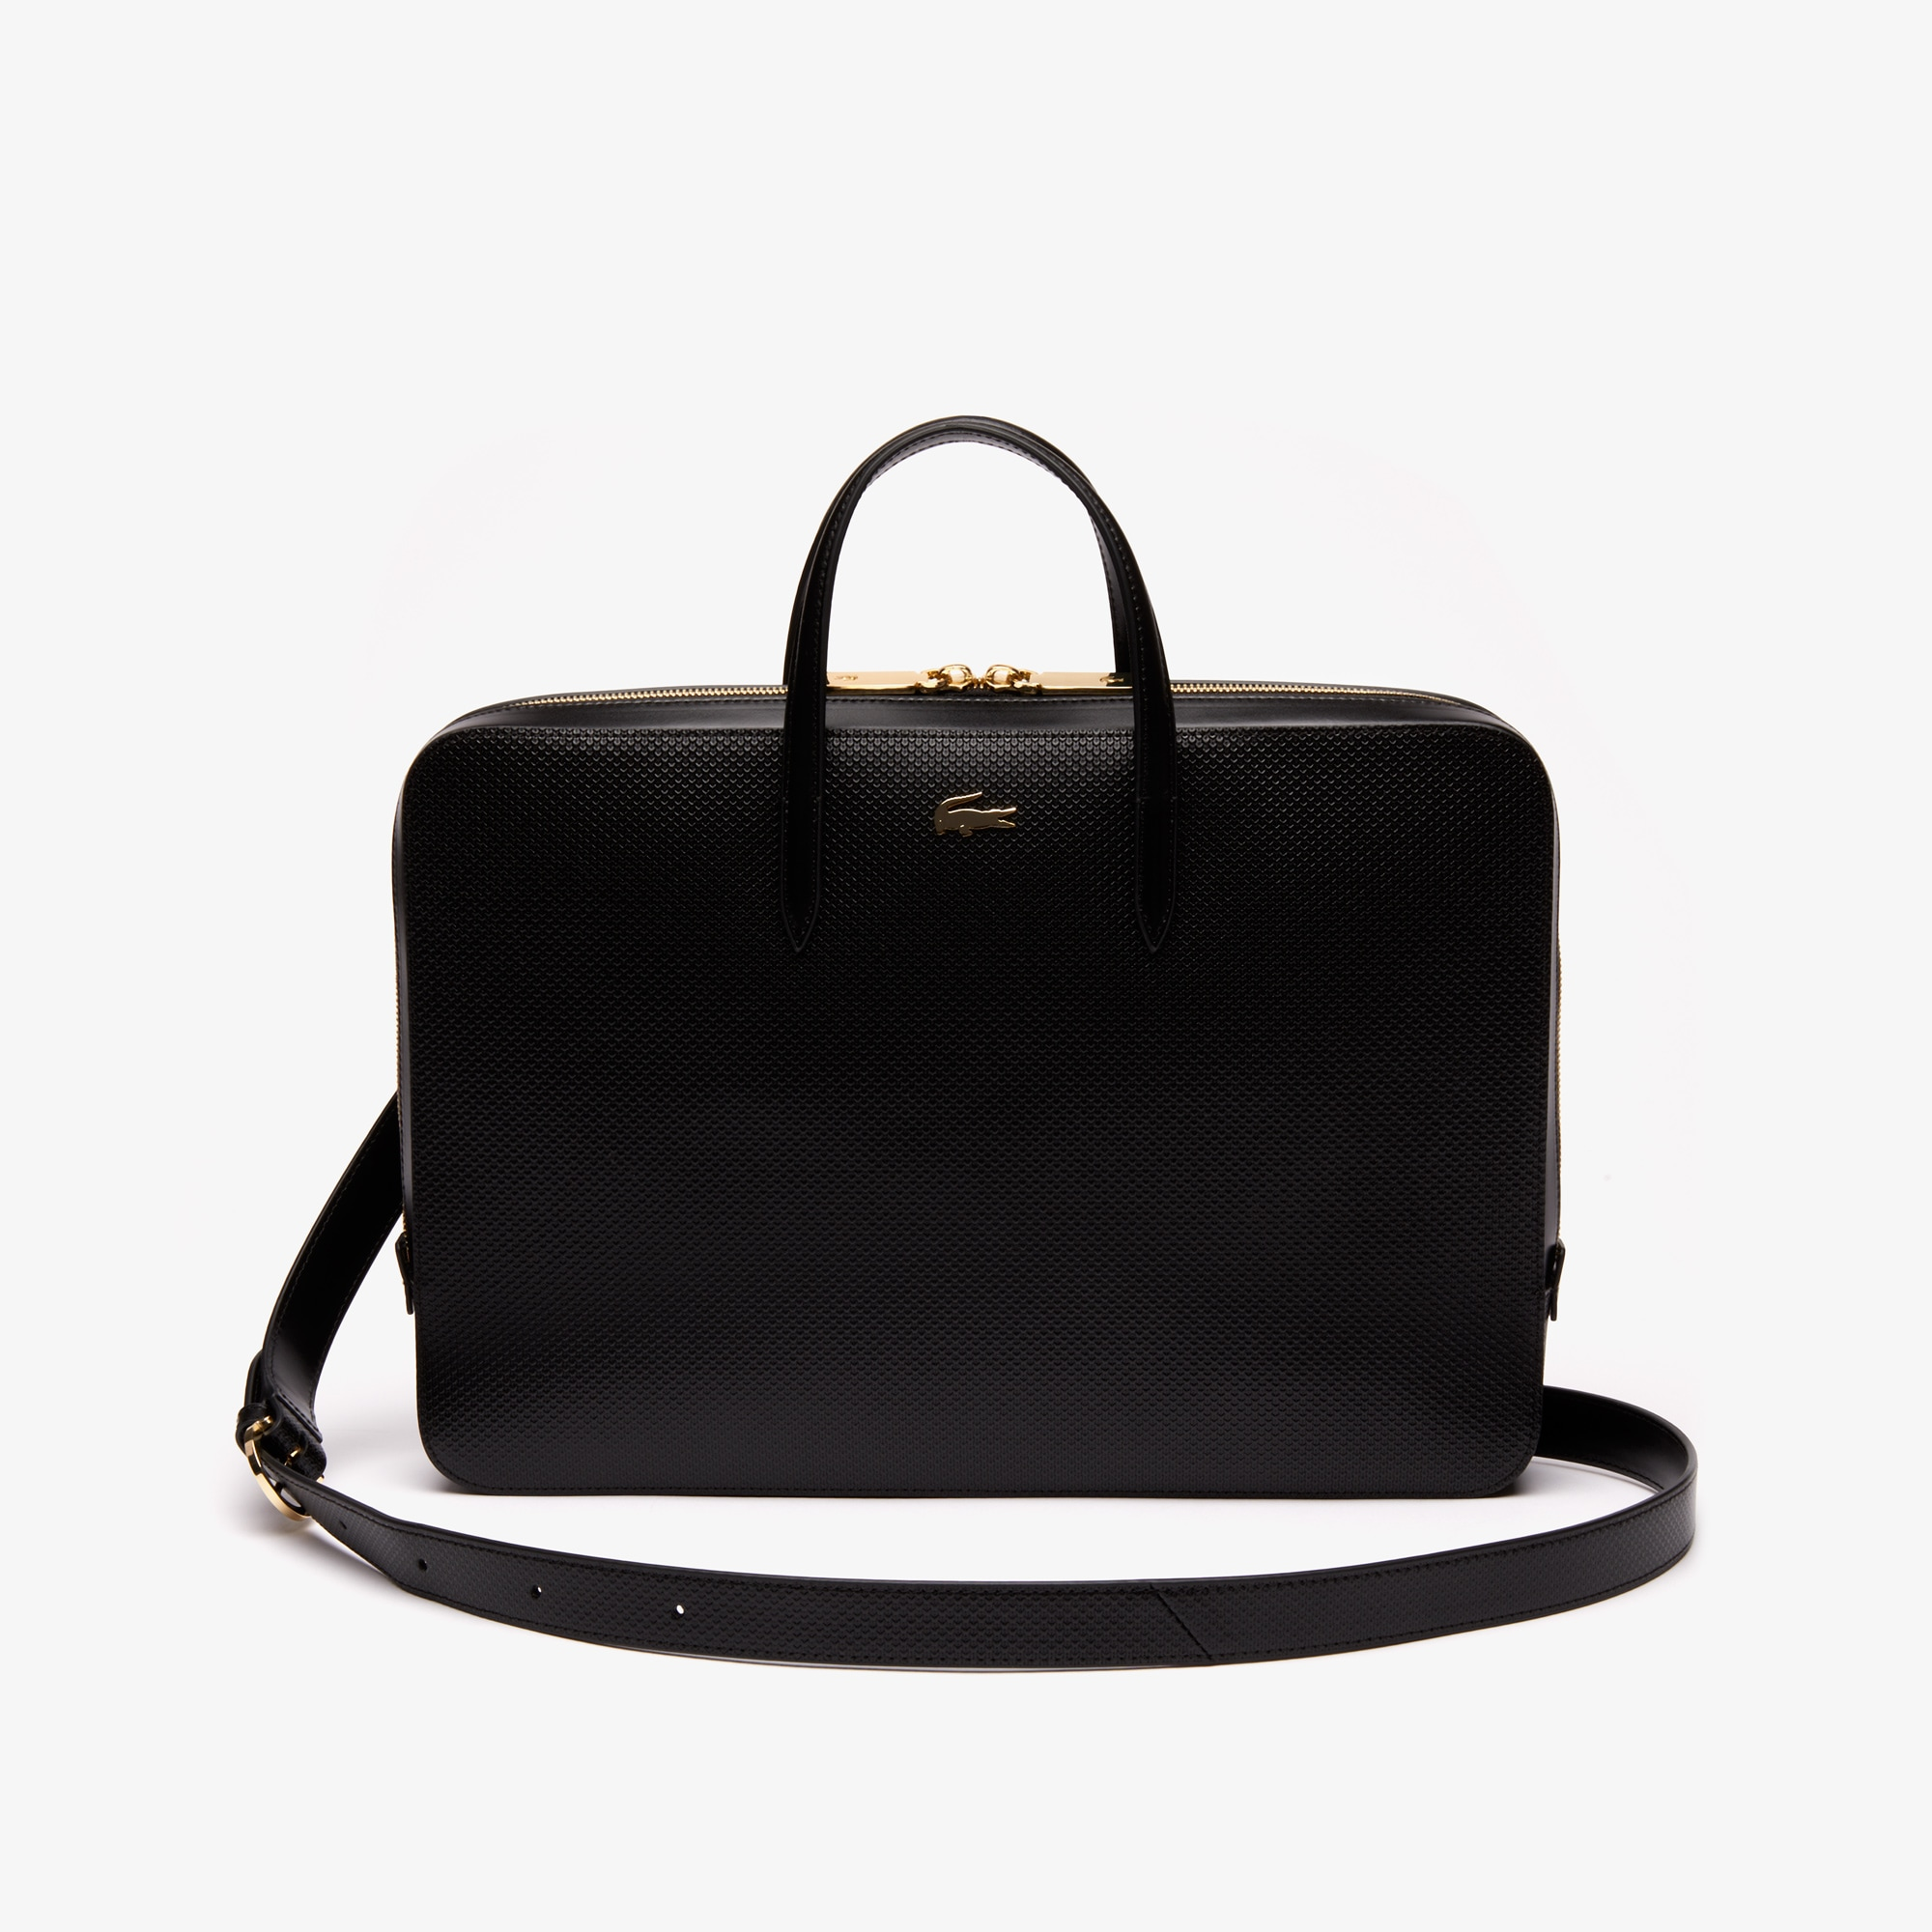 3c837b127e2 Bags & Handbags Collection | Women's Leather Goods | LACOSTE